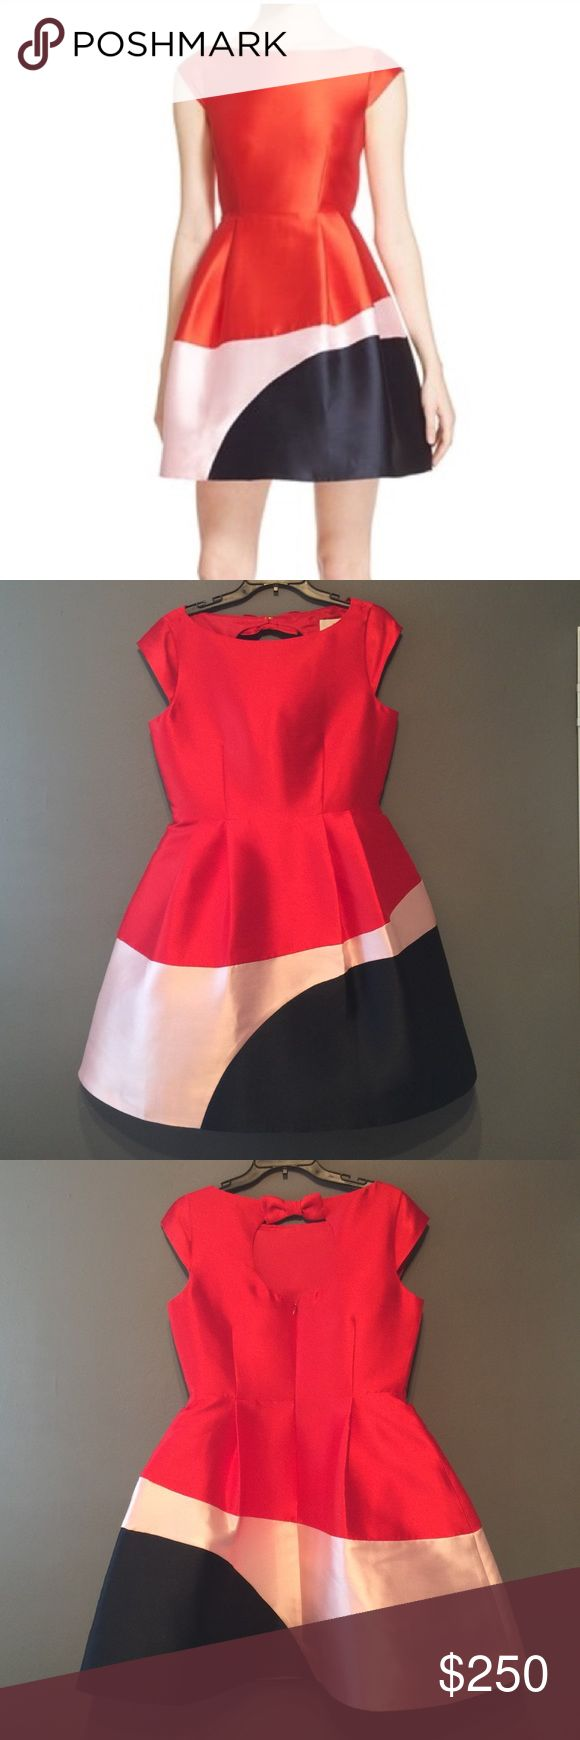 kate spade color block fit and flare dress NWT kate spade color block fit and flare dress NWT. Super cute cocktail dress!! Red, with a blush pink and navy blue bottom. 89% polyester, 11% silk. Snap closure at the back of the neck (bow) zips up in the back. Comes with original plastic covering bag. I love this dress so only will sell if offer is right! ❤️ kate spade Dresses